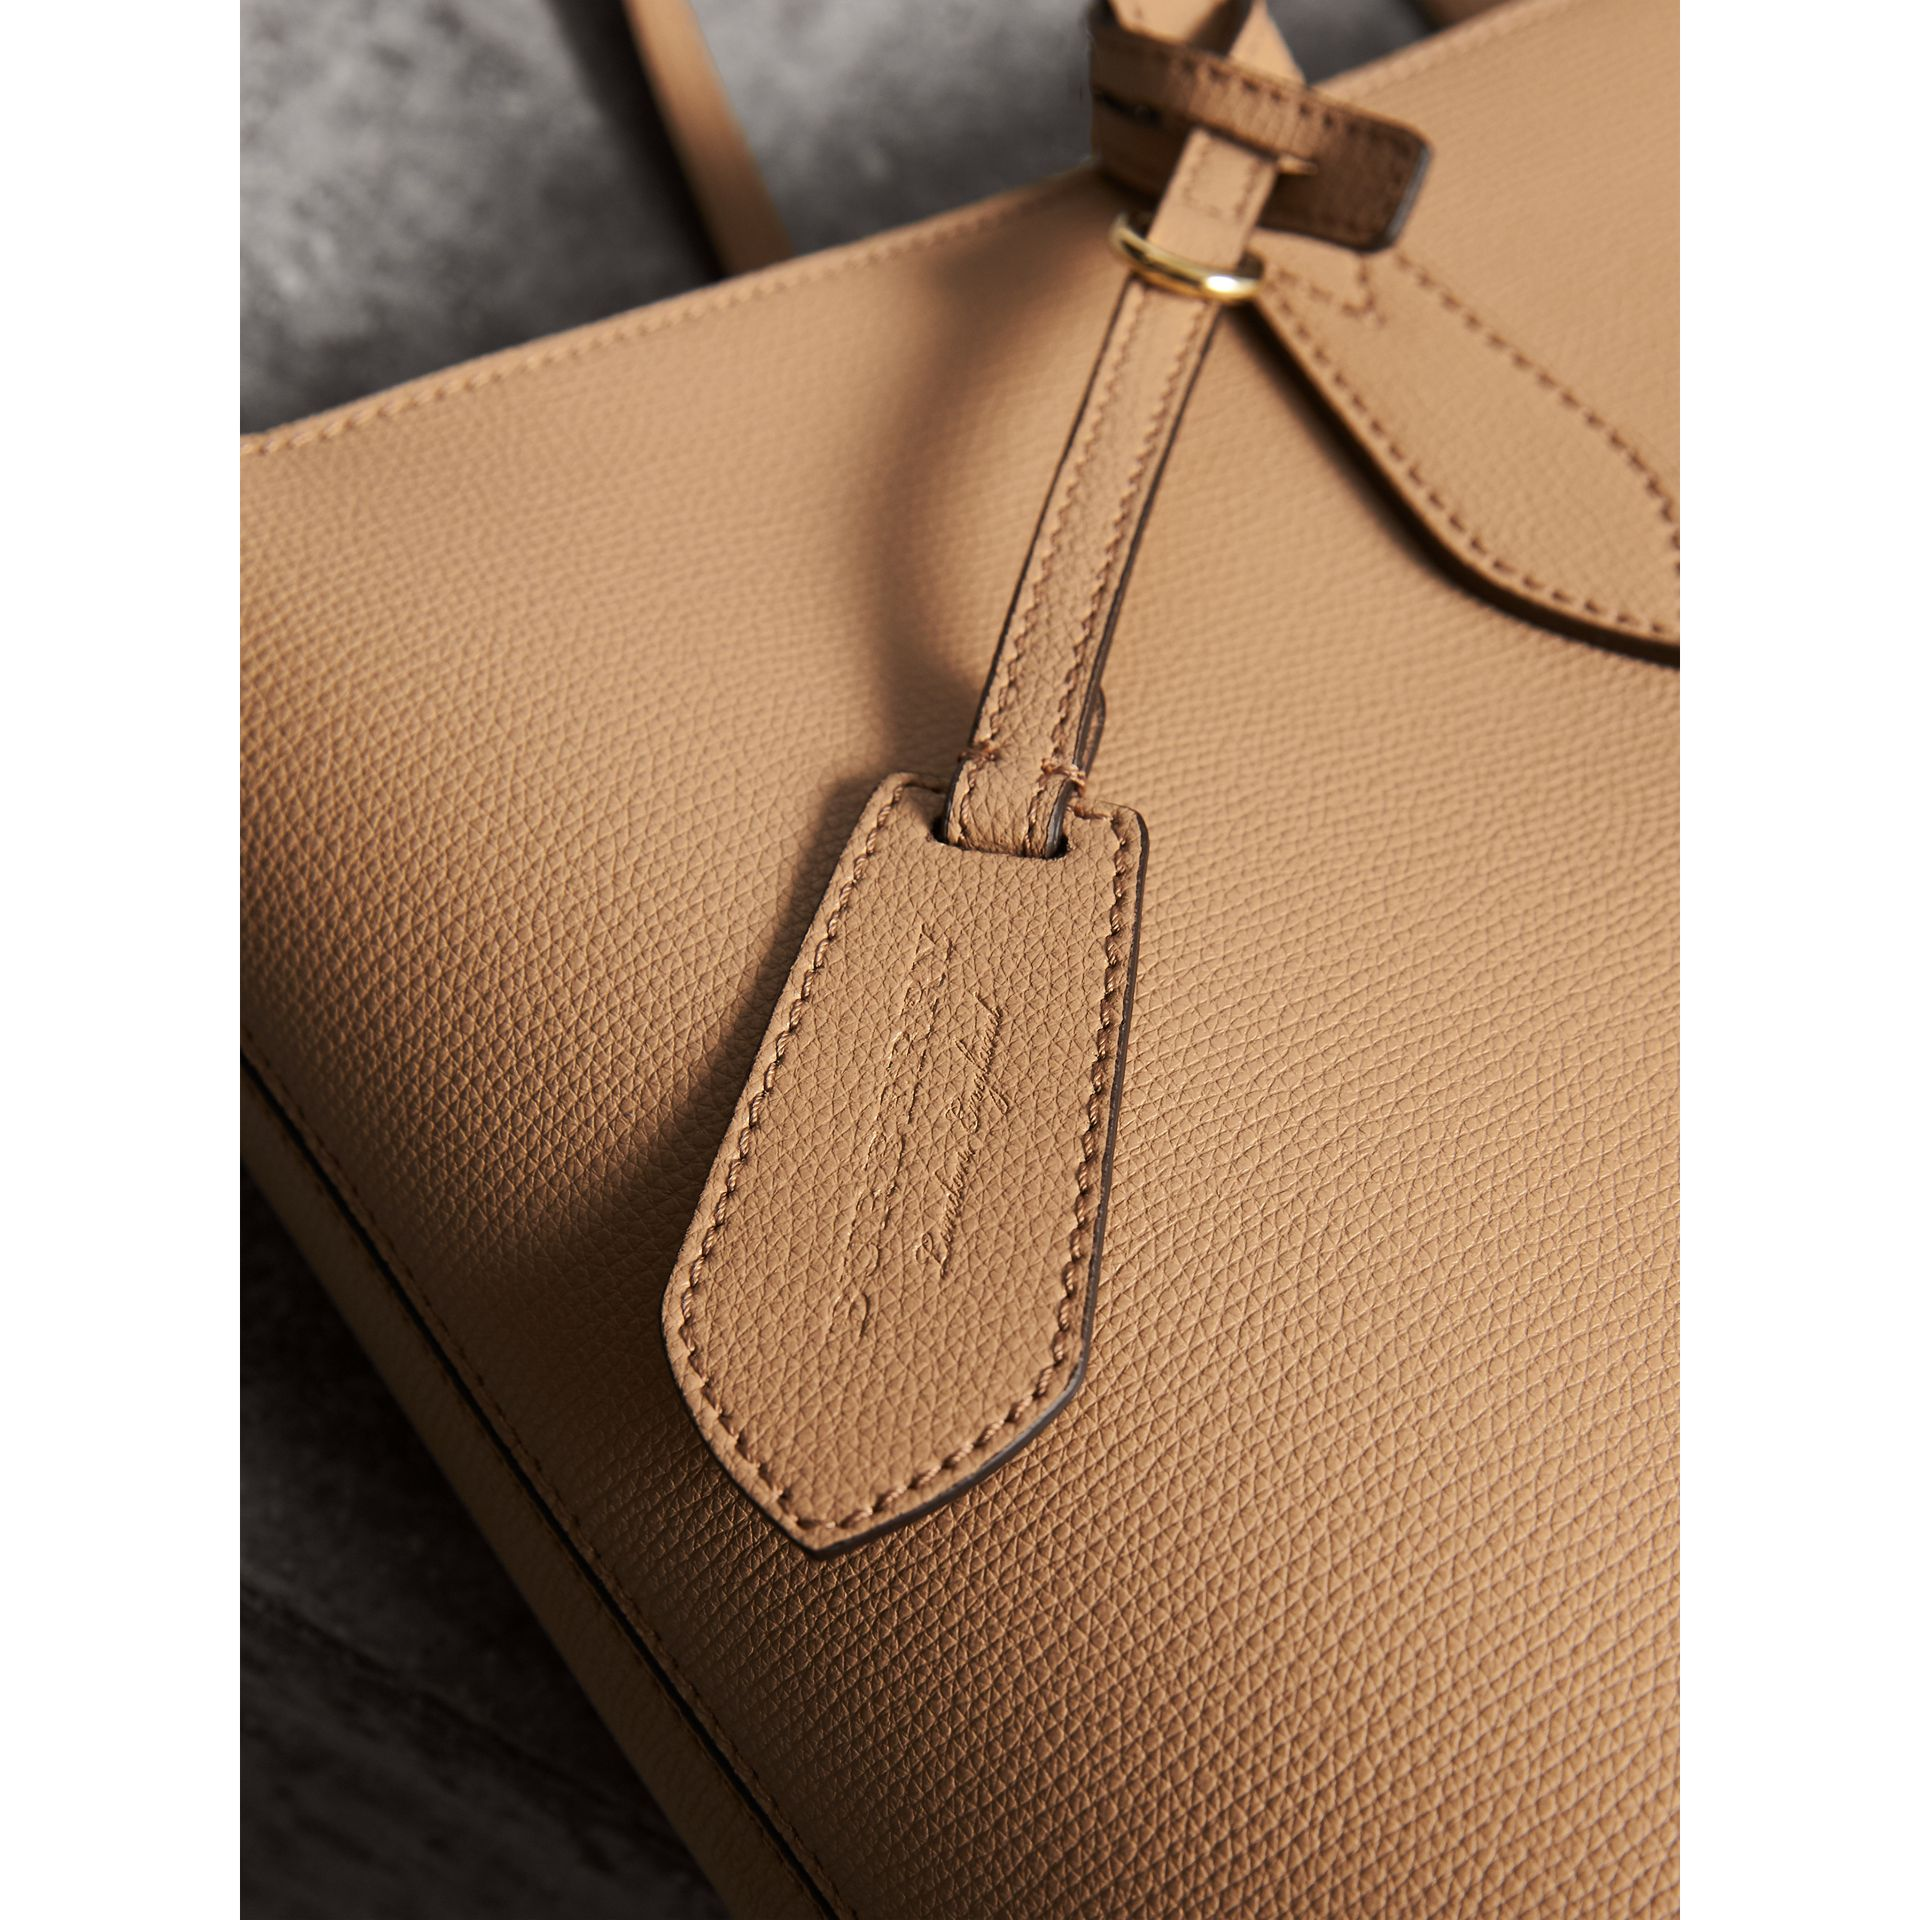 Medium Coated Leather Tote in Mid Camel - Women | Burberry Hong Kong - gallery image 2